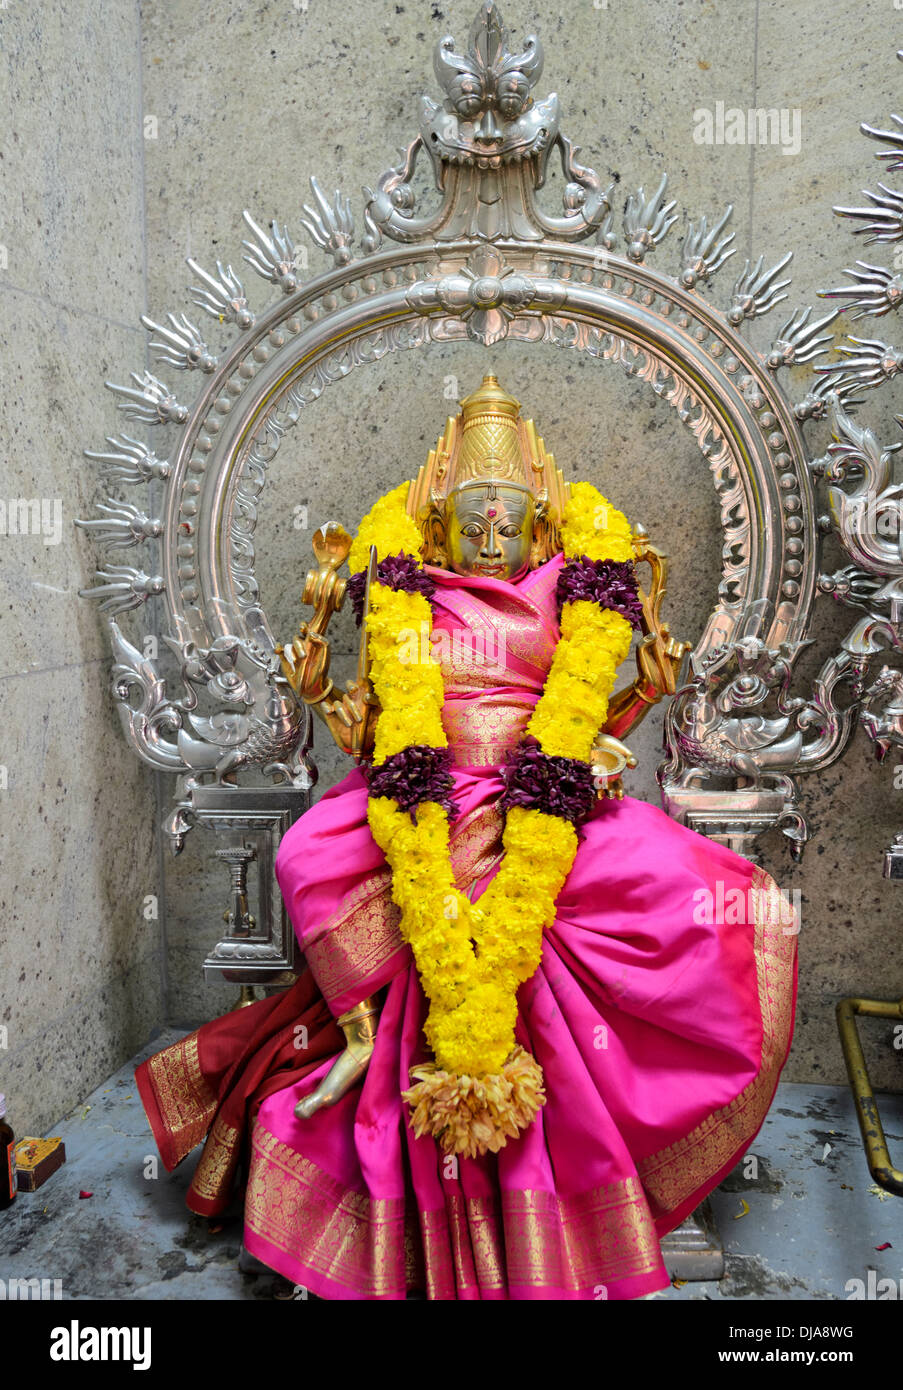 Statue of a four-armed Hindu deity, adorned with a colourful garland of yellow flowers and a pink dress. - Stock Image